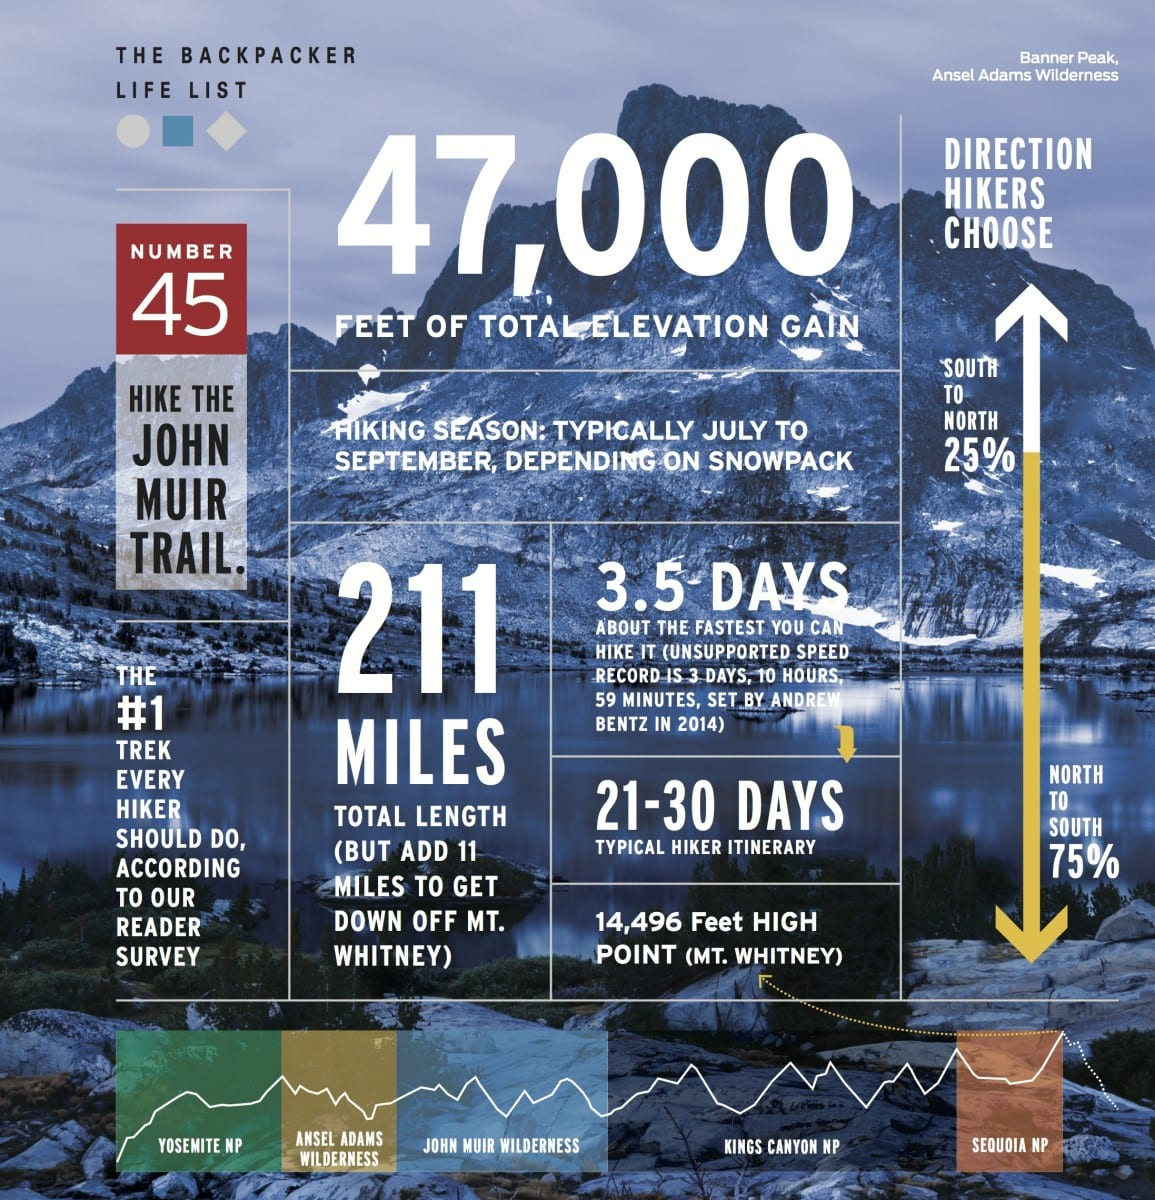 John Muir Trail facts and figures by